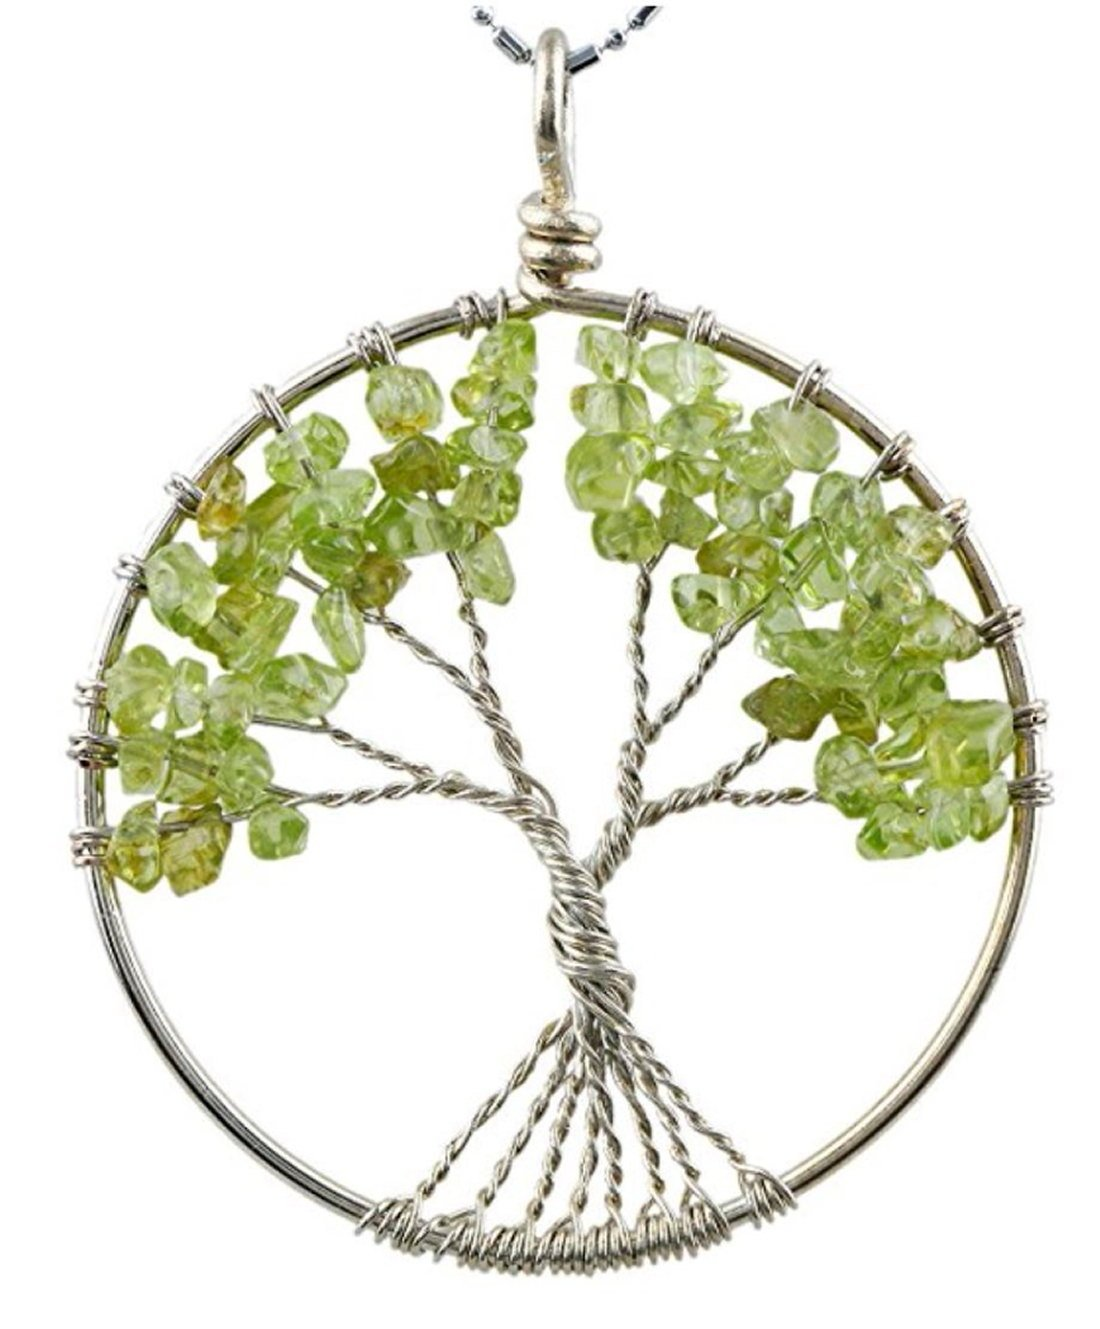 Tree of Life Gemstone Necklace Natural Peridot Necklace Healing Crystals Chakra Jewelry 26''-28'' Chain Great Gift GGP9-13